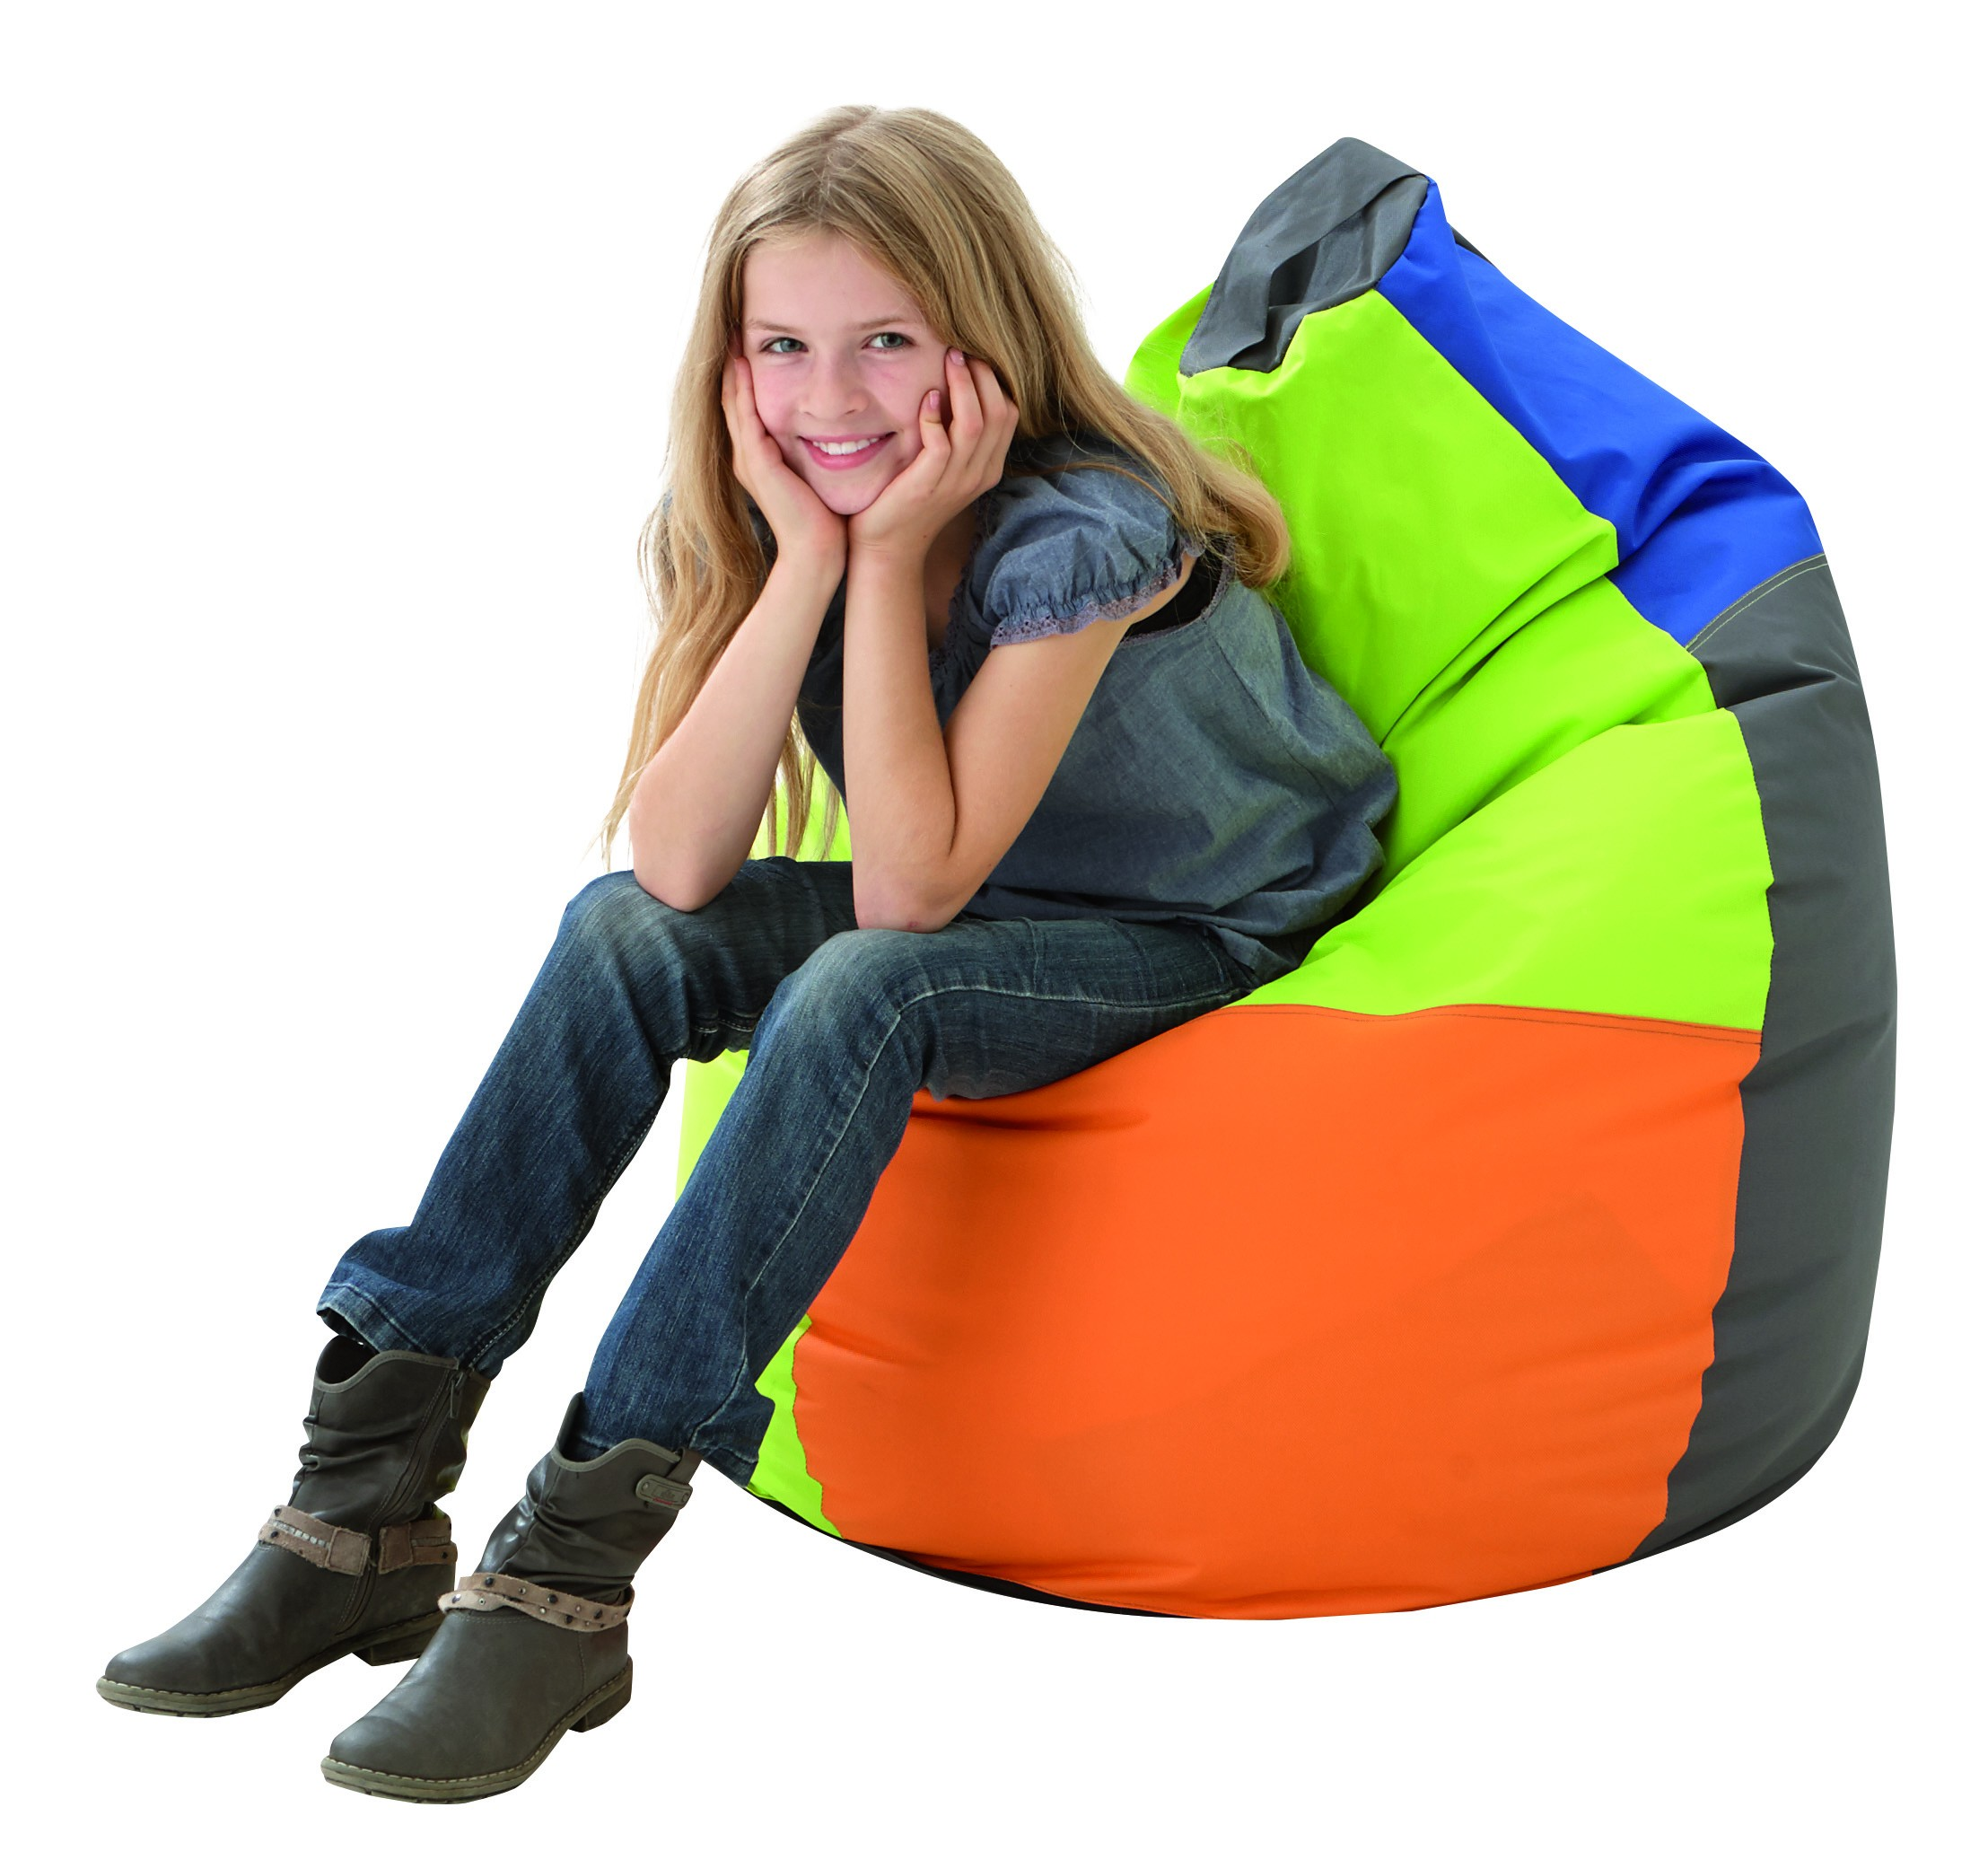 Multi Color Bean Bag With Handle By Haba 022923 Library